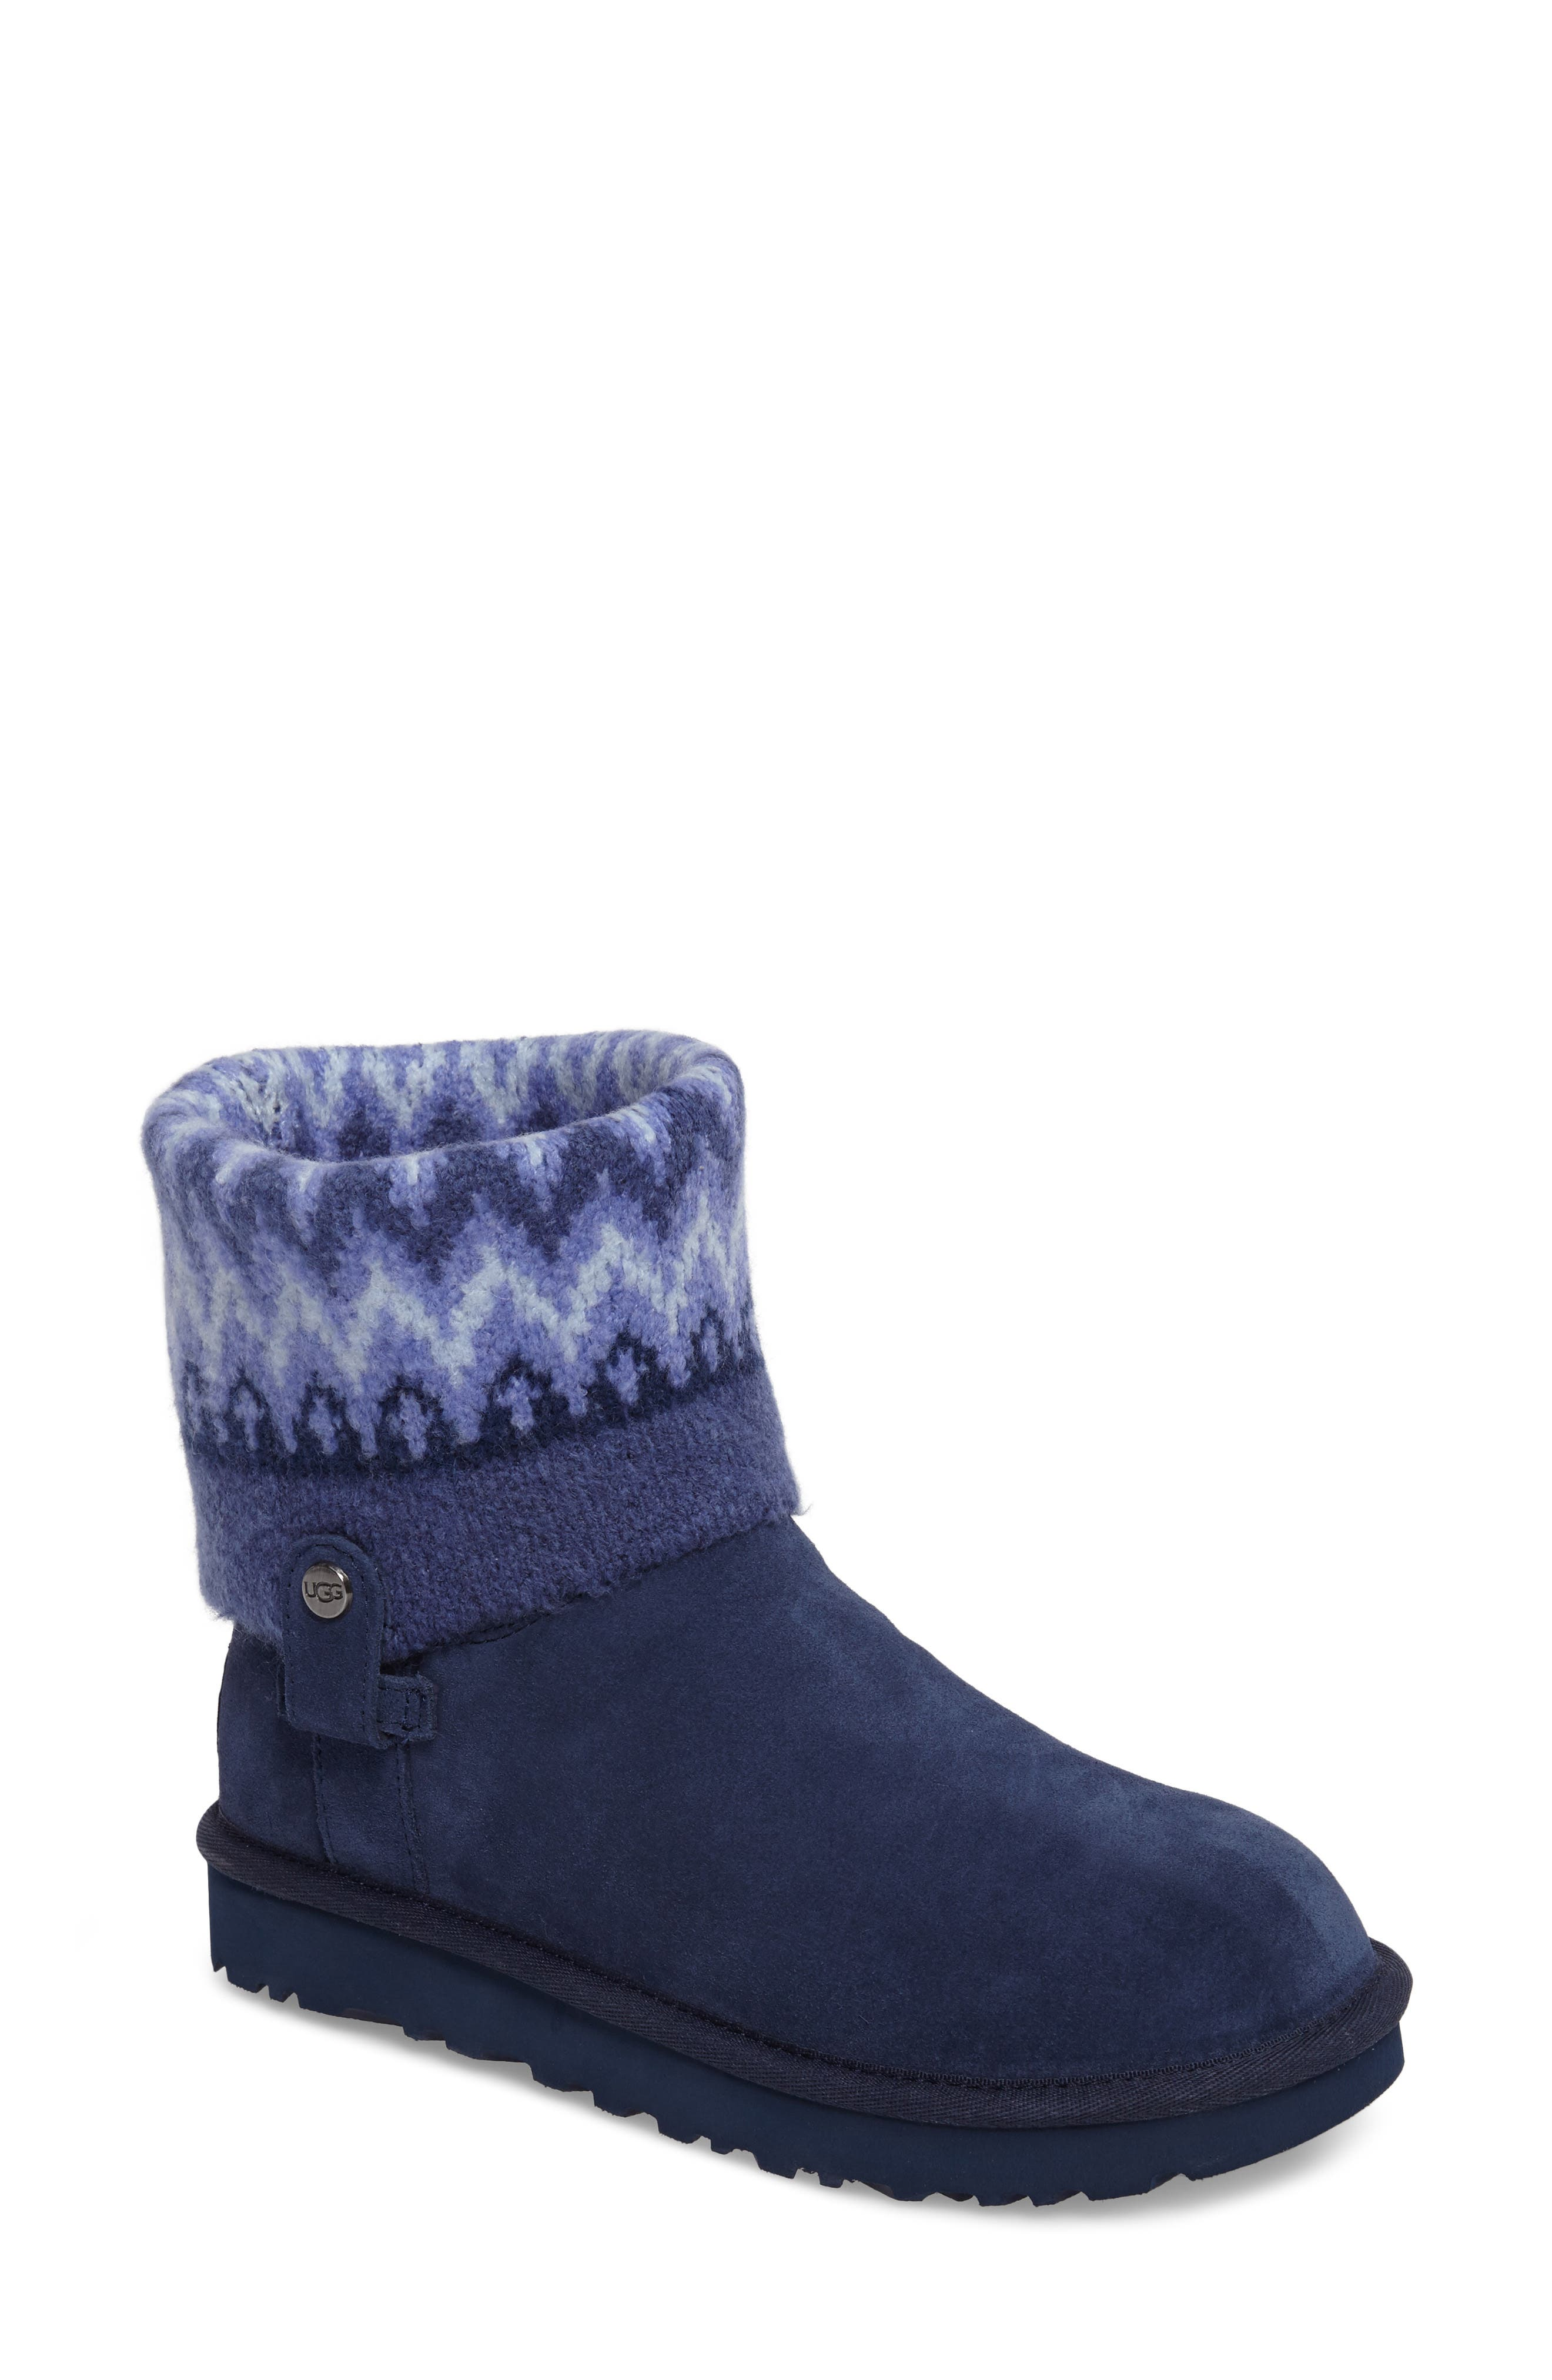 Saela Icelandic Boot,                         Main,                         color, Navy Suede